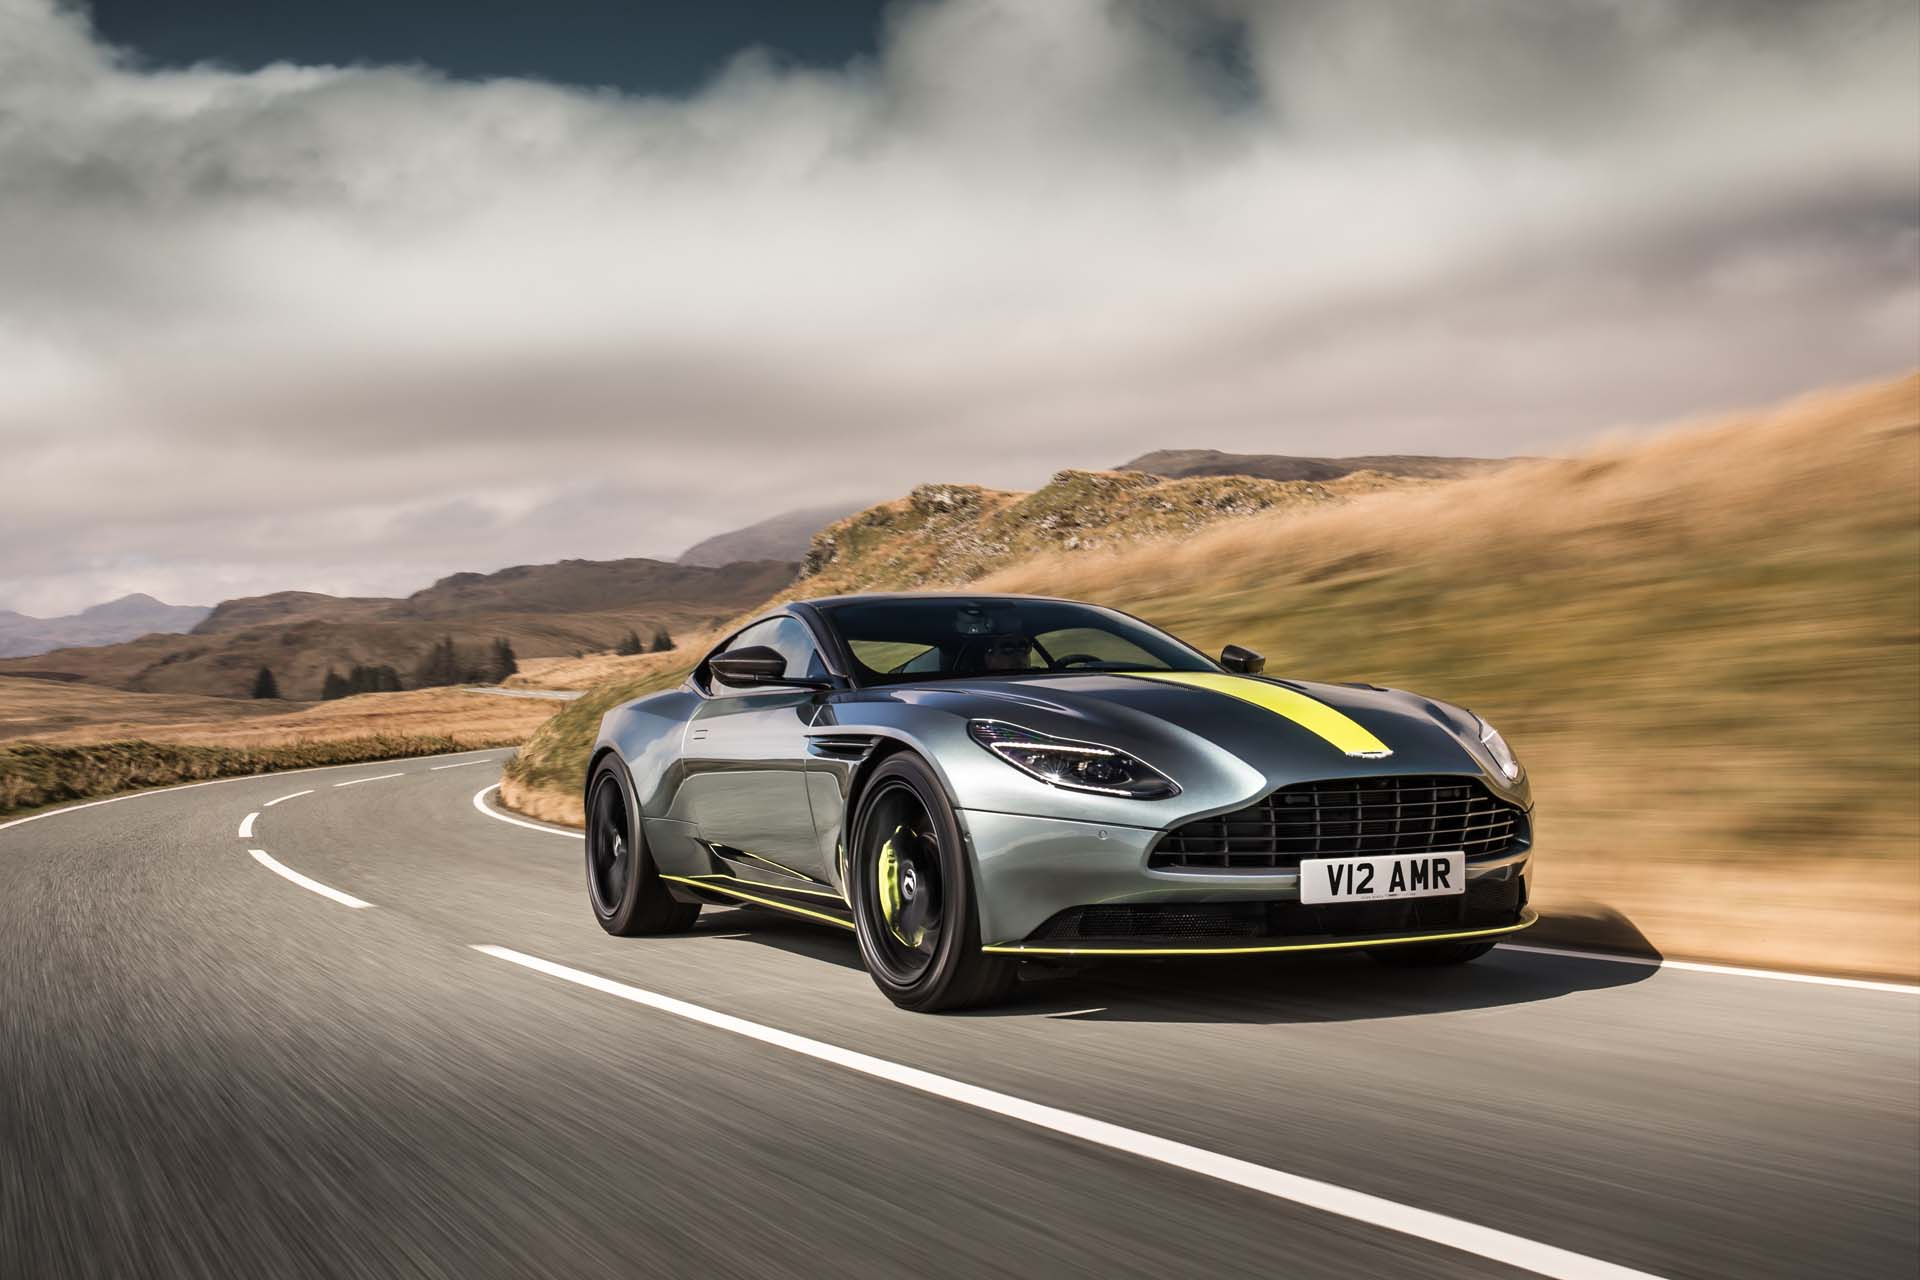 2019 aston martin db11 gets the amr treatment